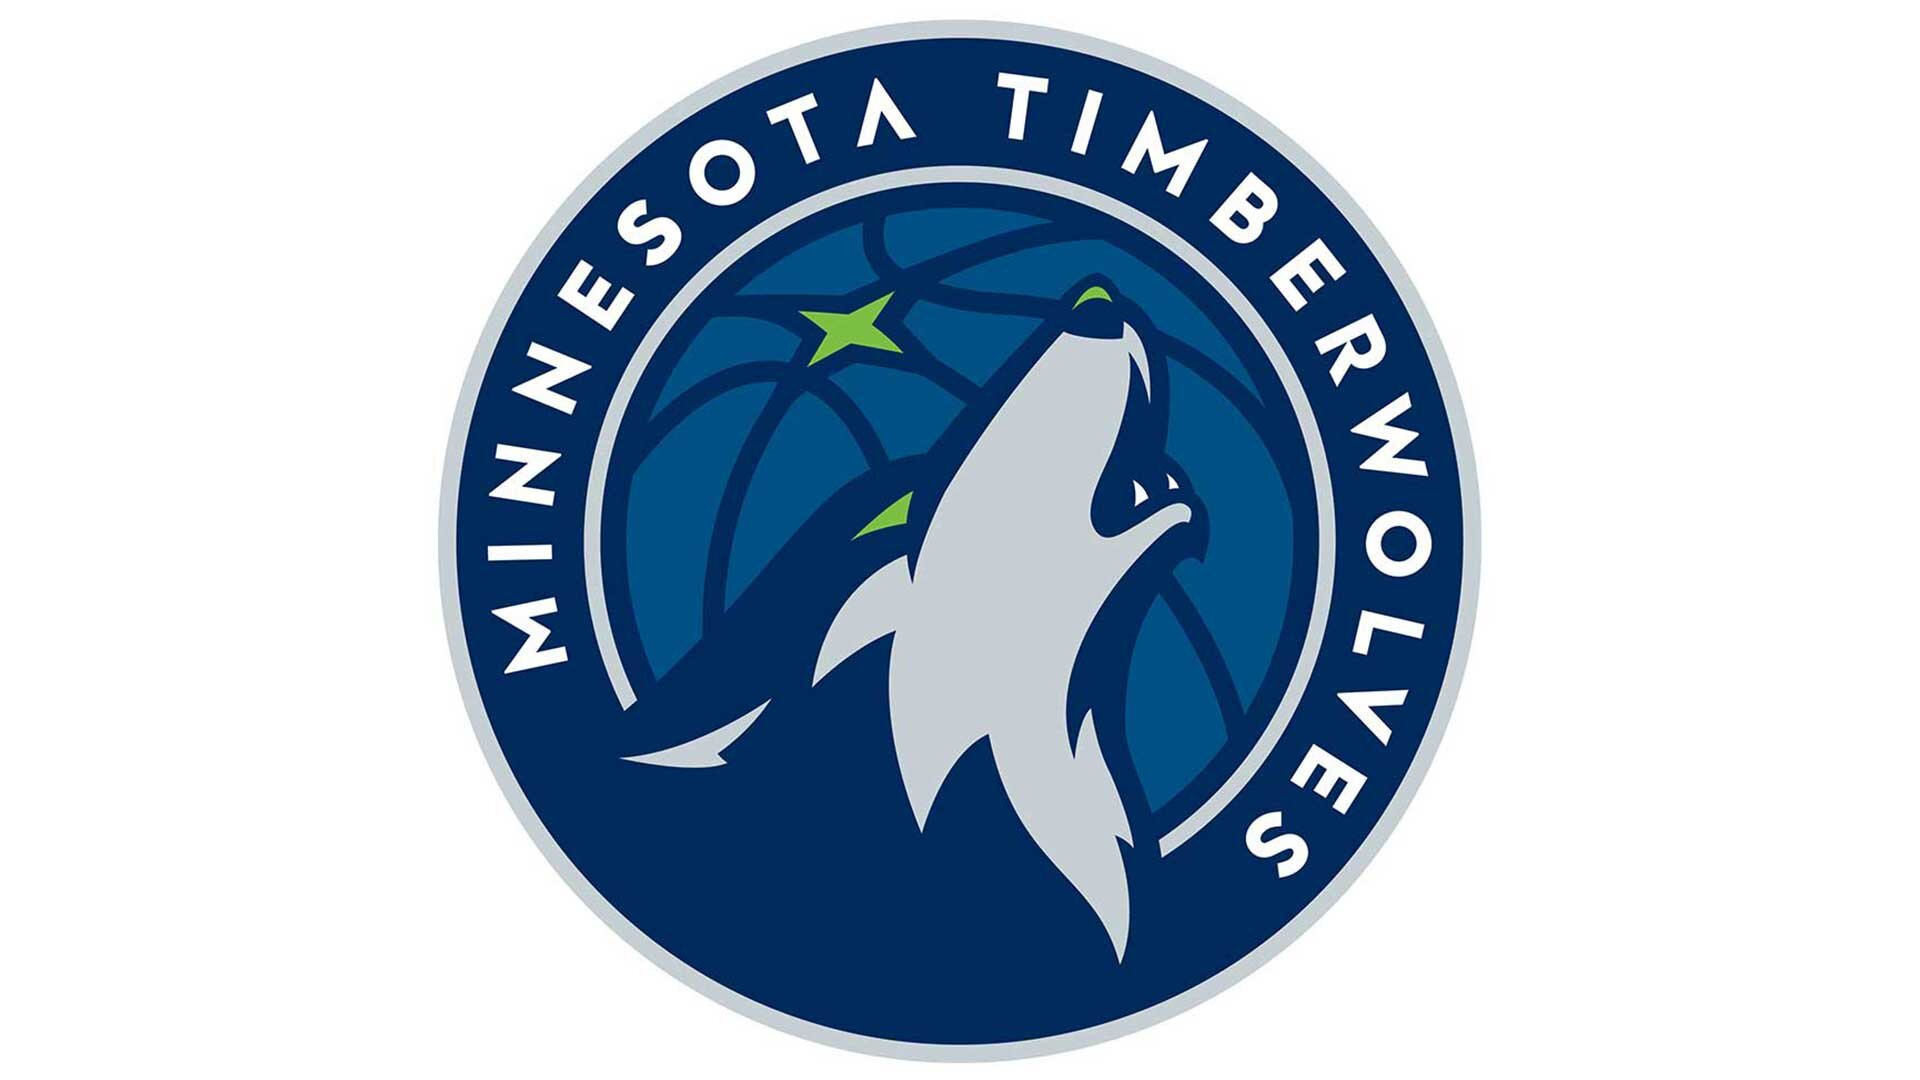 Minnesota-Freedom-Fund-to-Use-Remaining-Funds-to-Purchase-Minnesota-Timberwolves.jpg